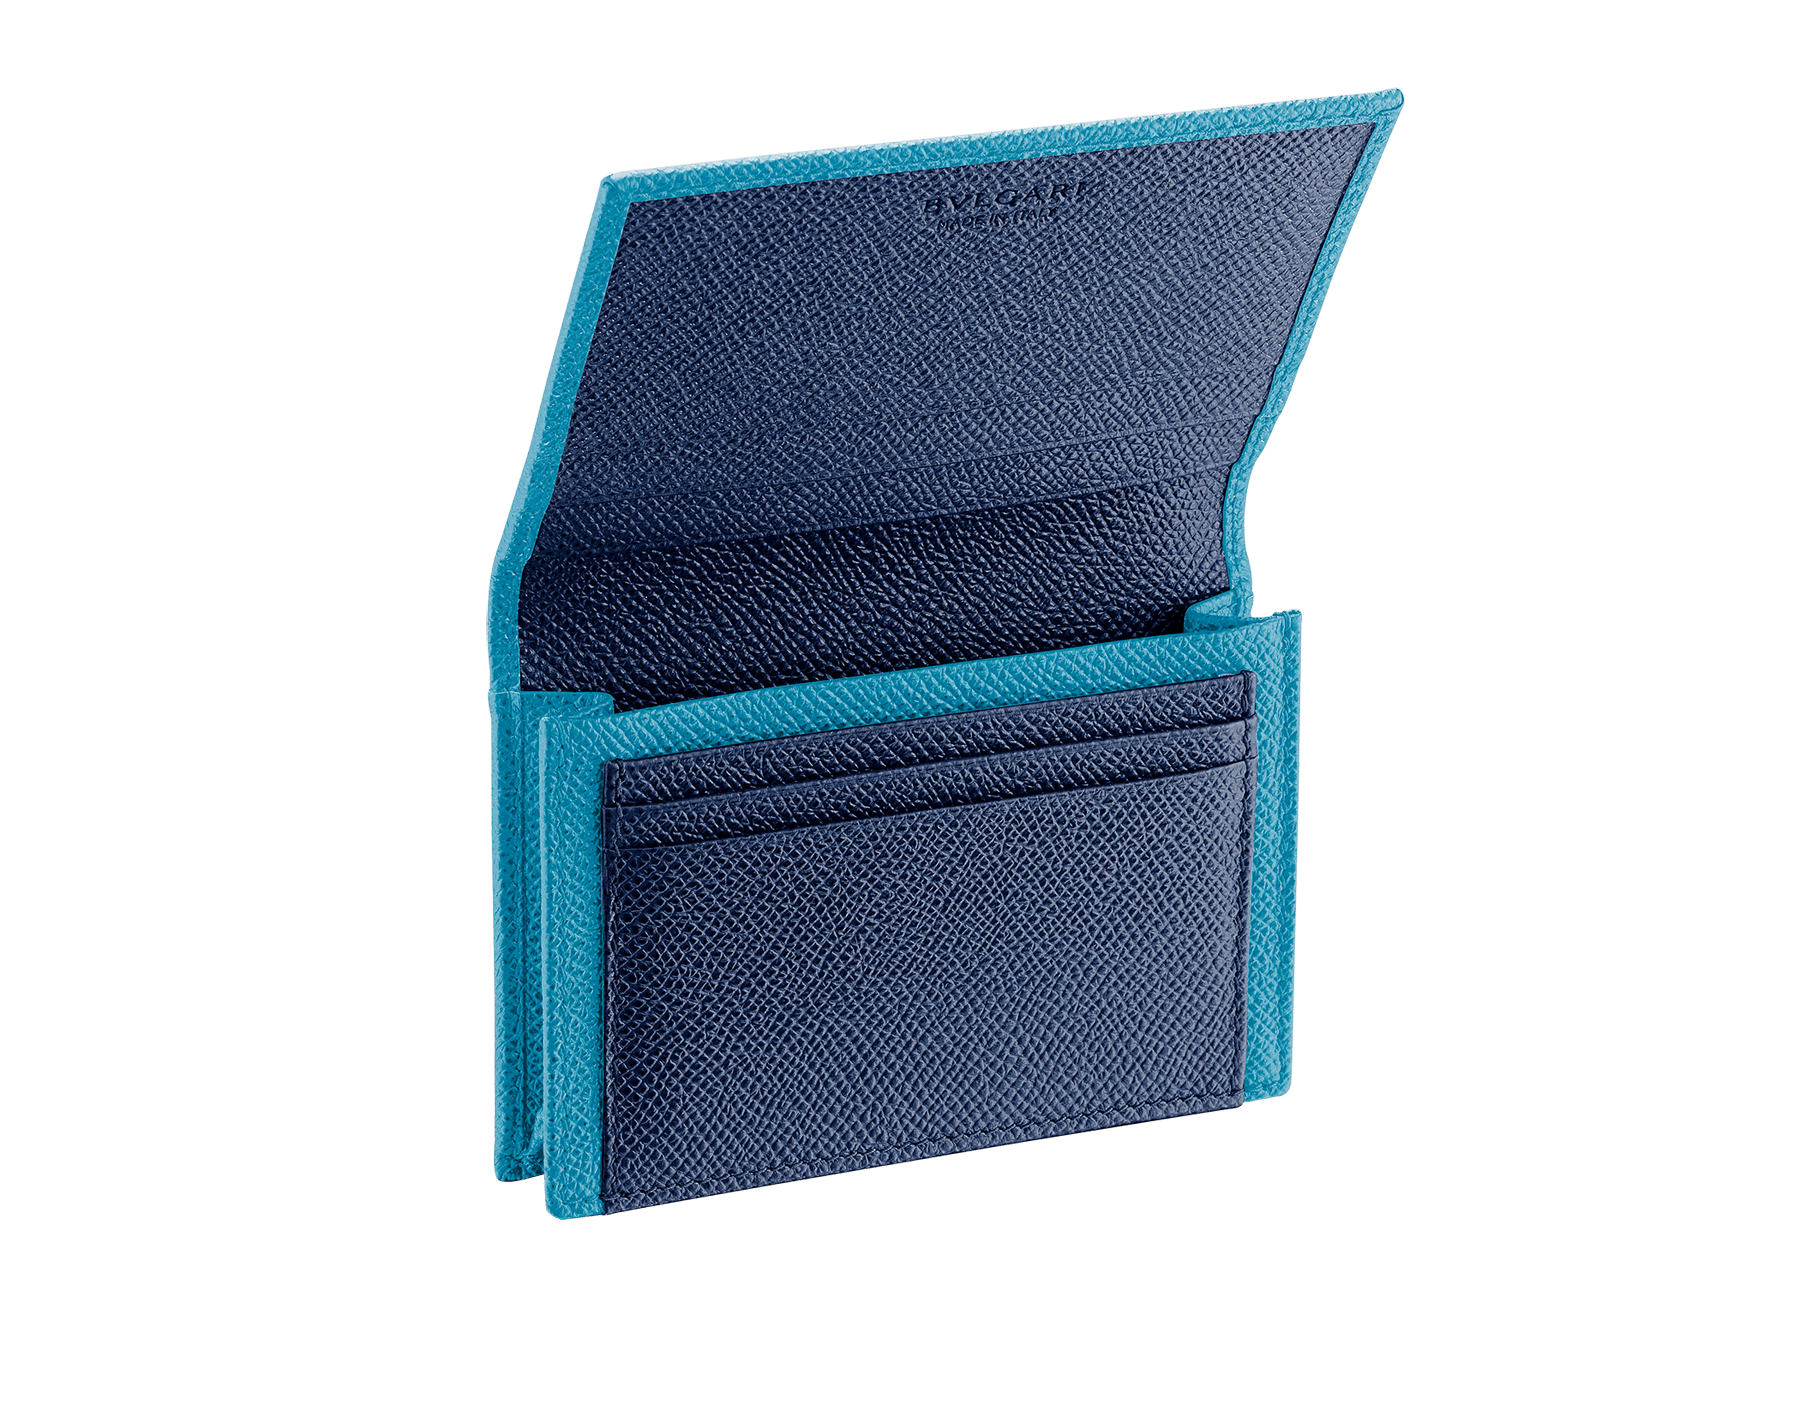 """""""BVLGARI BVLGARI"""" business card holder in capri turquoise and royal sapphire grain calf leather, with brass palladium plated logo décor. BBM-BC-HOLD-SIMPLEb image 2"""